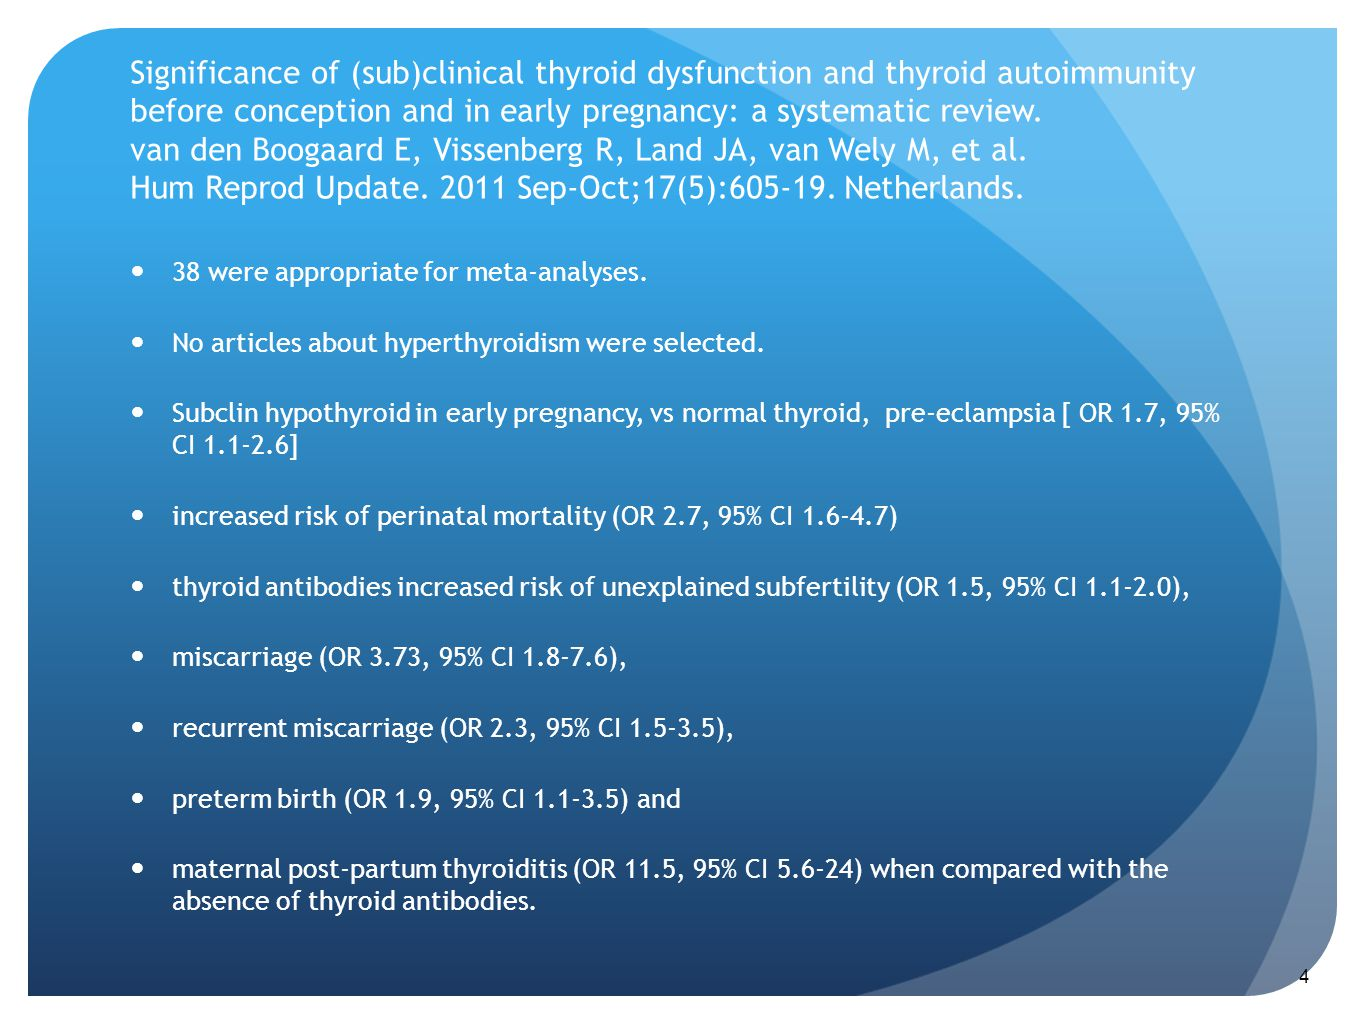 Significance of (sub)clinical thyroid dysfunction and thyroid autoimmunity before conception and in early pregnancy: a systematic review. van den Boogaard E, Vissenberg R, Land JA, van Wely M, et al. Hum Reprod Update. 2011 Sep-Oct;17(5):605-19. Netherlands.